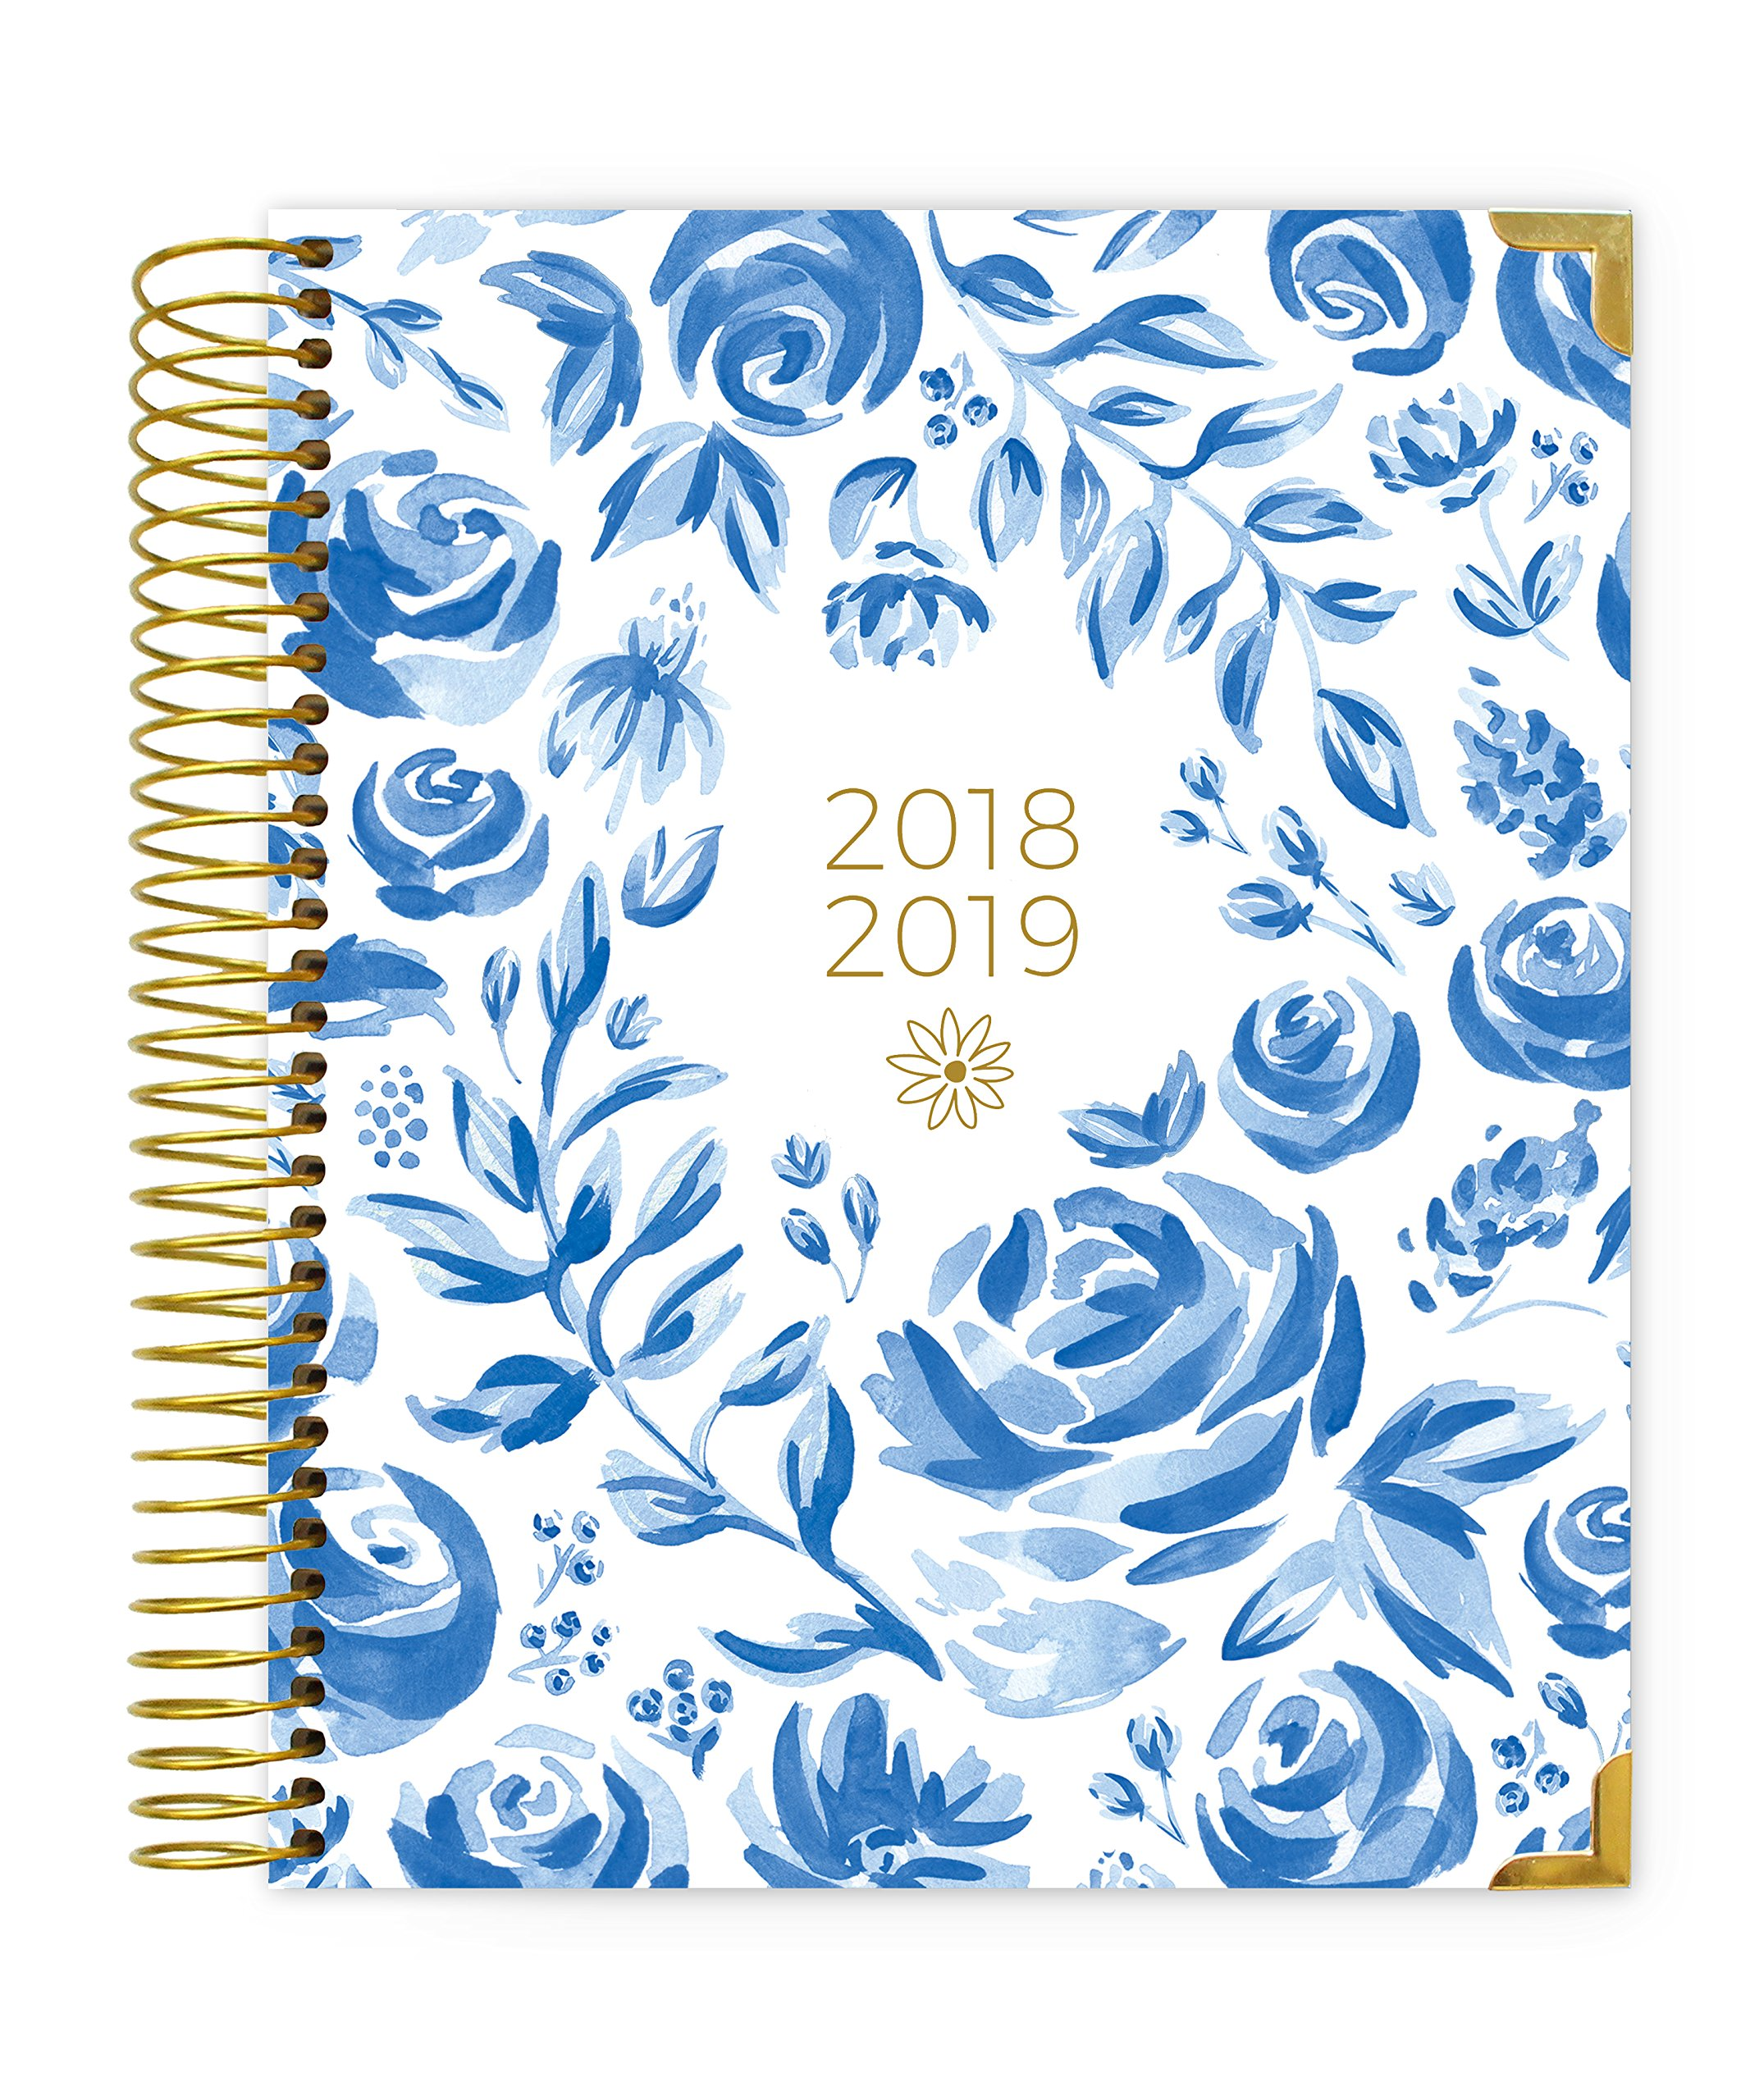 bloom daily planners 2018-2019 Academic Year Hard Cover Vision Planner - Monthly/Weekly Column View Day Planner Agenda Calendar Organizer - (August 2018 - July 2019) -7.5'' x 9''-Blue & White Floral